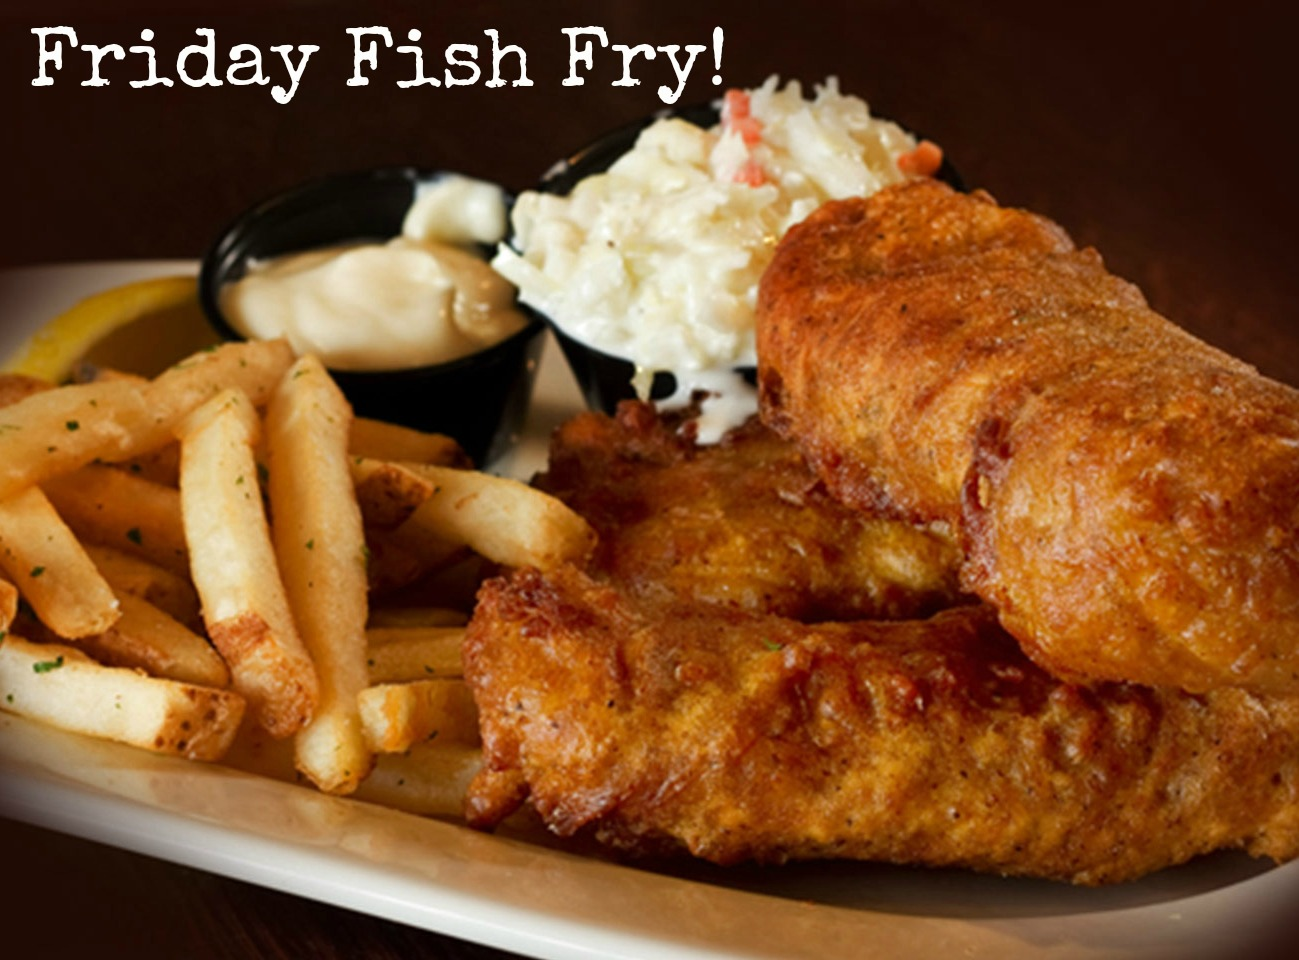 Fish fry fridays 2015 march 27 for All you can eat fish fry